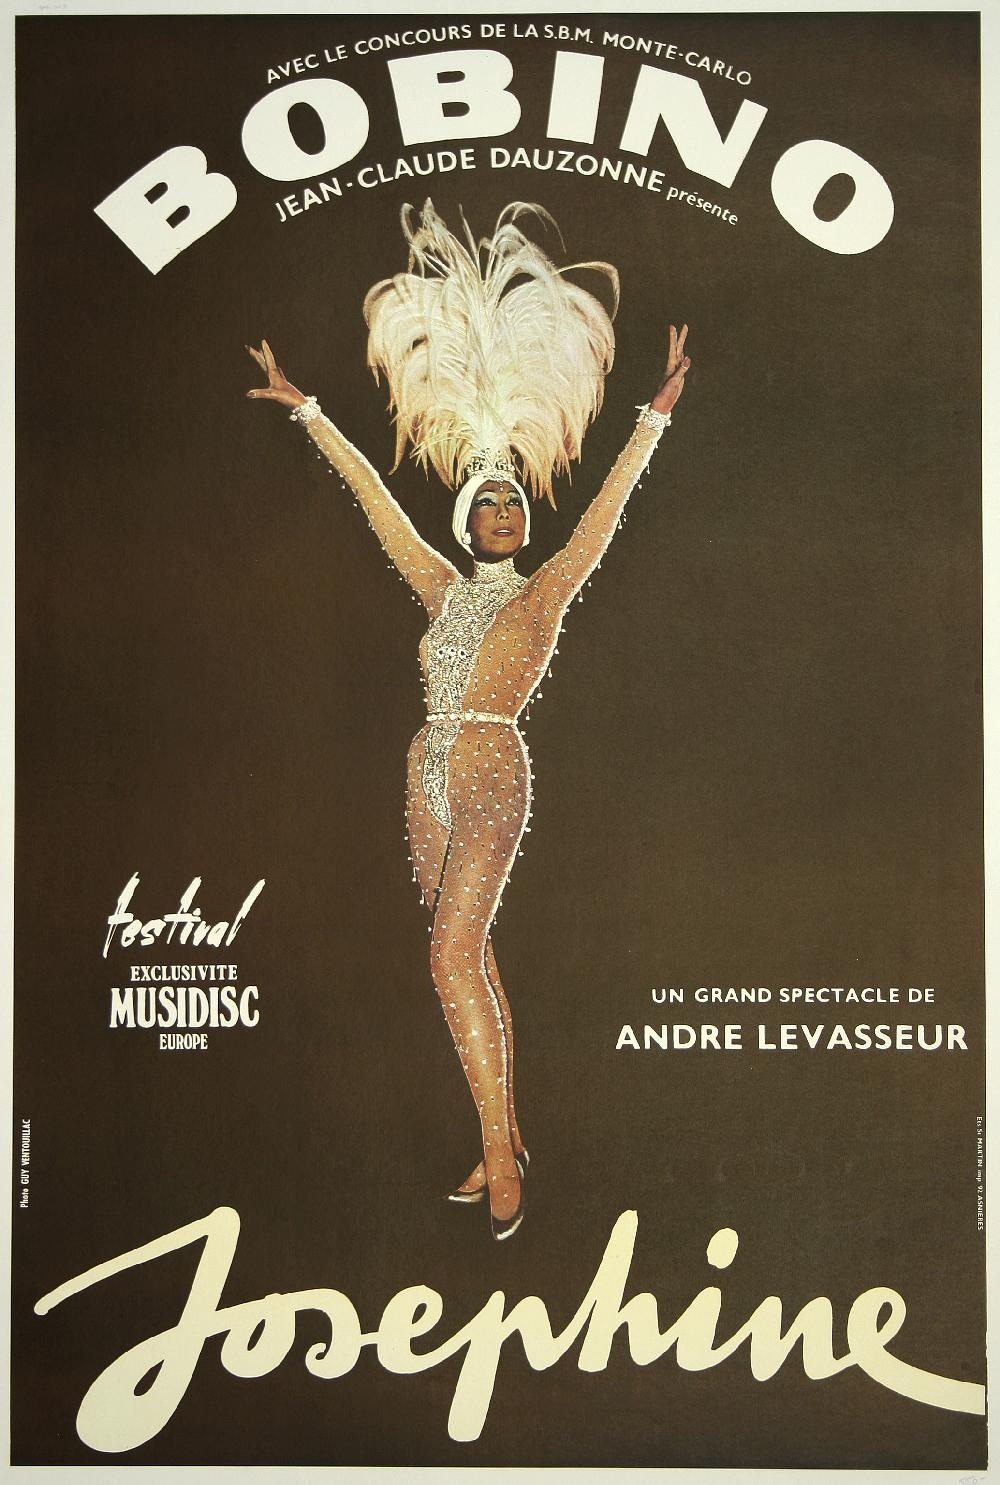 Josephine's promotional at Bobino music hall in 1975 to celebrate her 50th anniversary in the business.